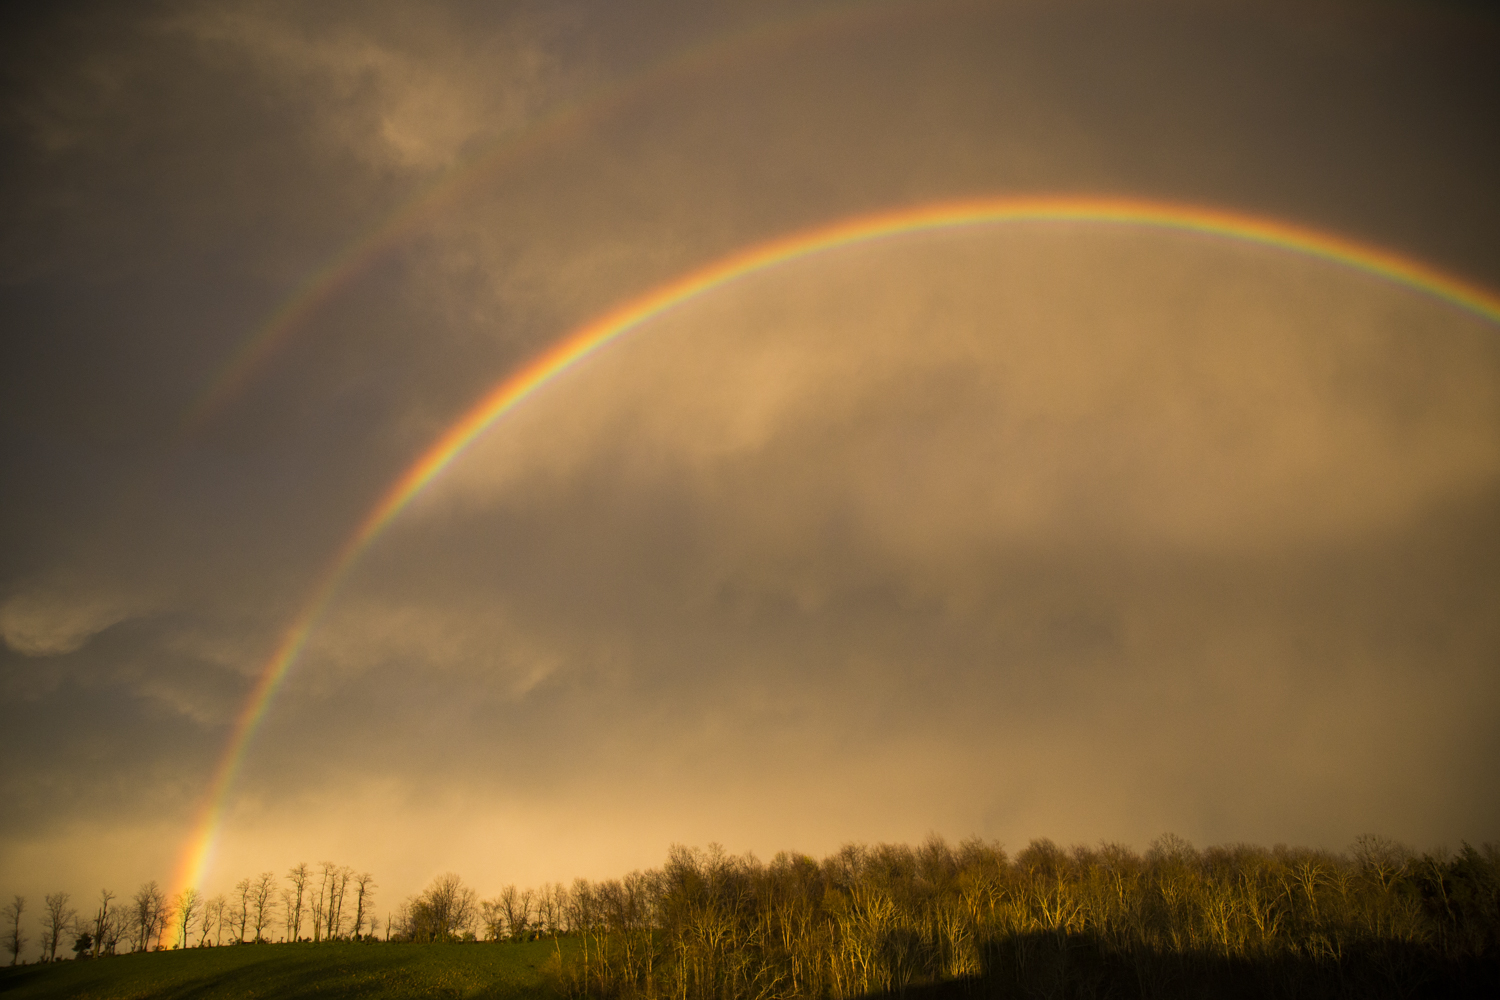 View of the most breath-taking rainbow I have ever seen, taken on our land